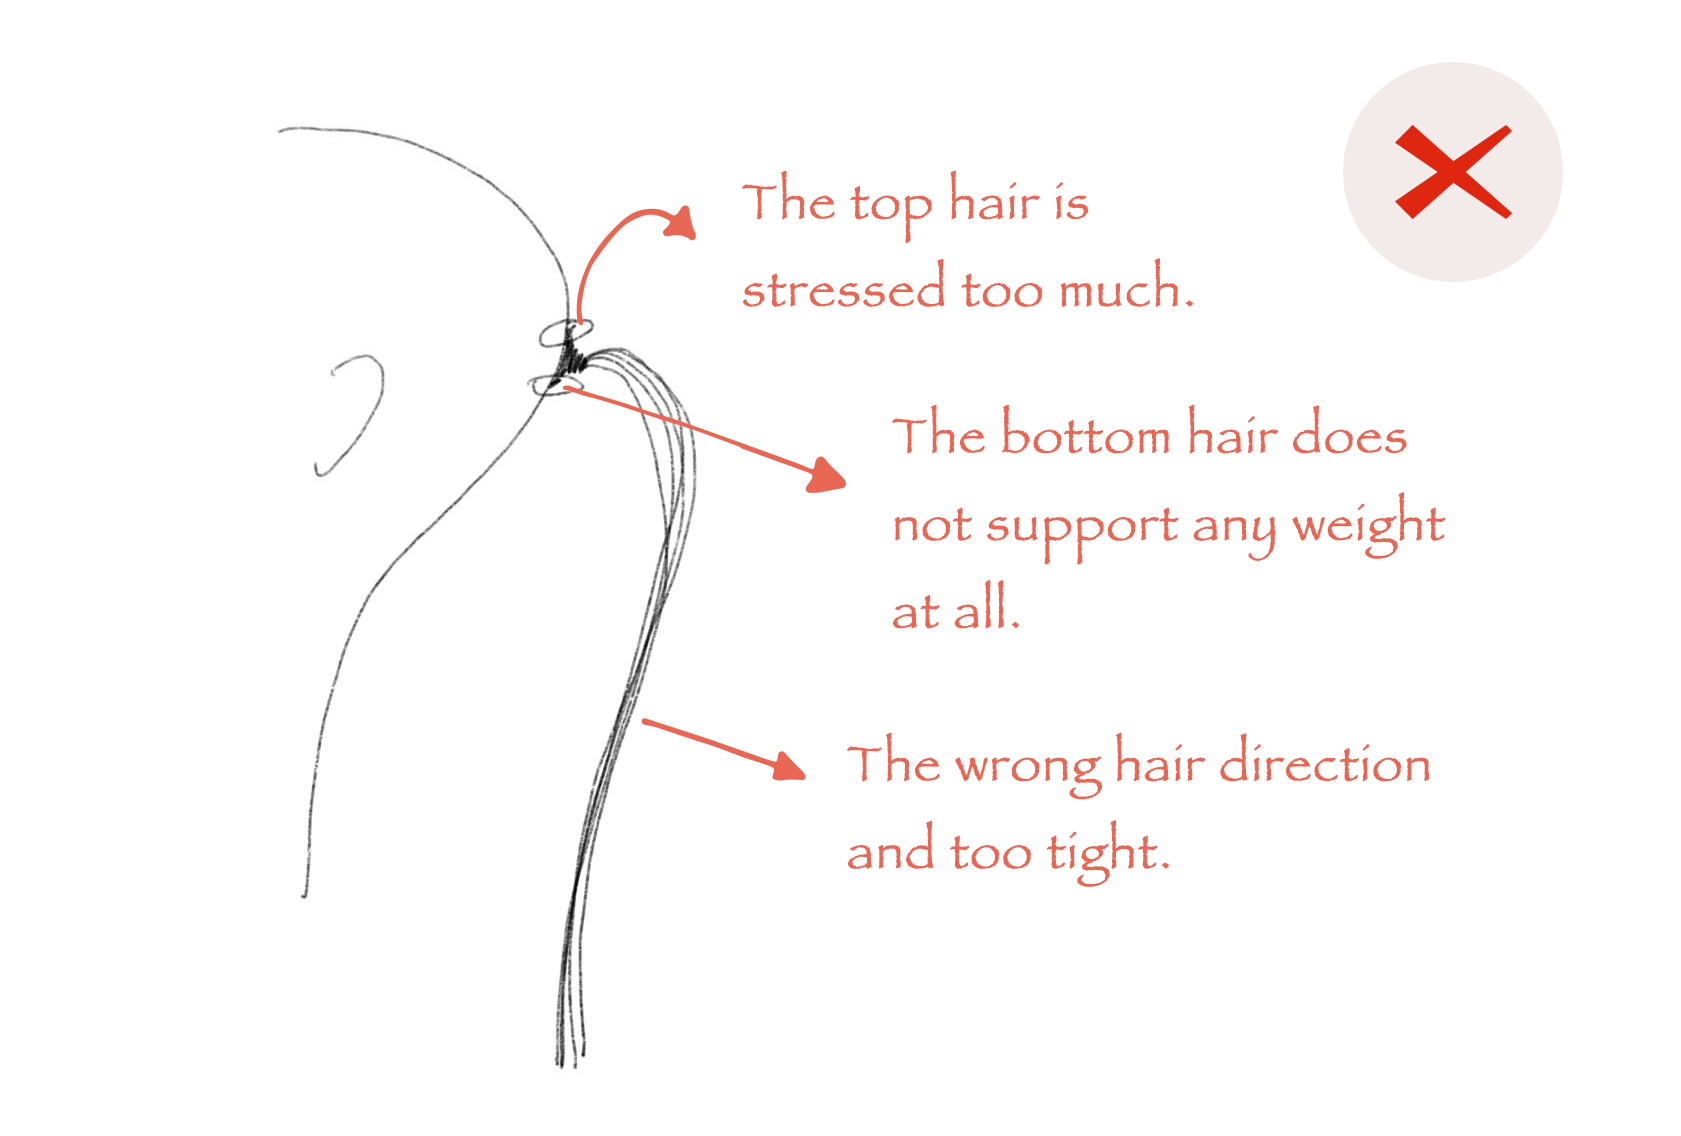 Does Hair-extension damage your hair? too tight